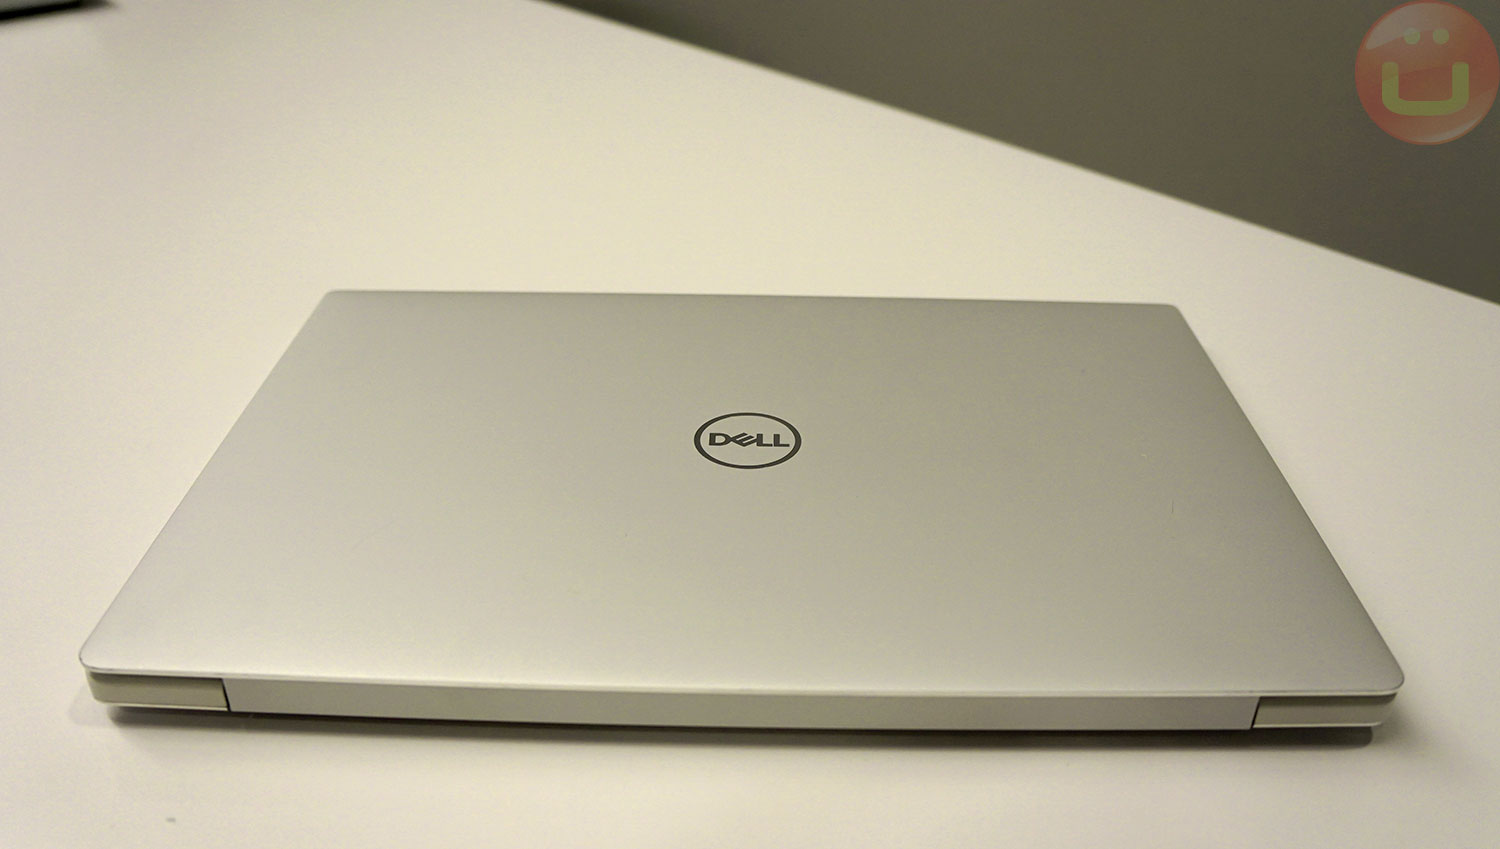 Dell XPS 13 (9380) Gets New Webcam, CPU and Colors | Ubergizmo